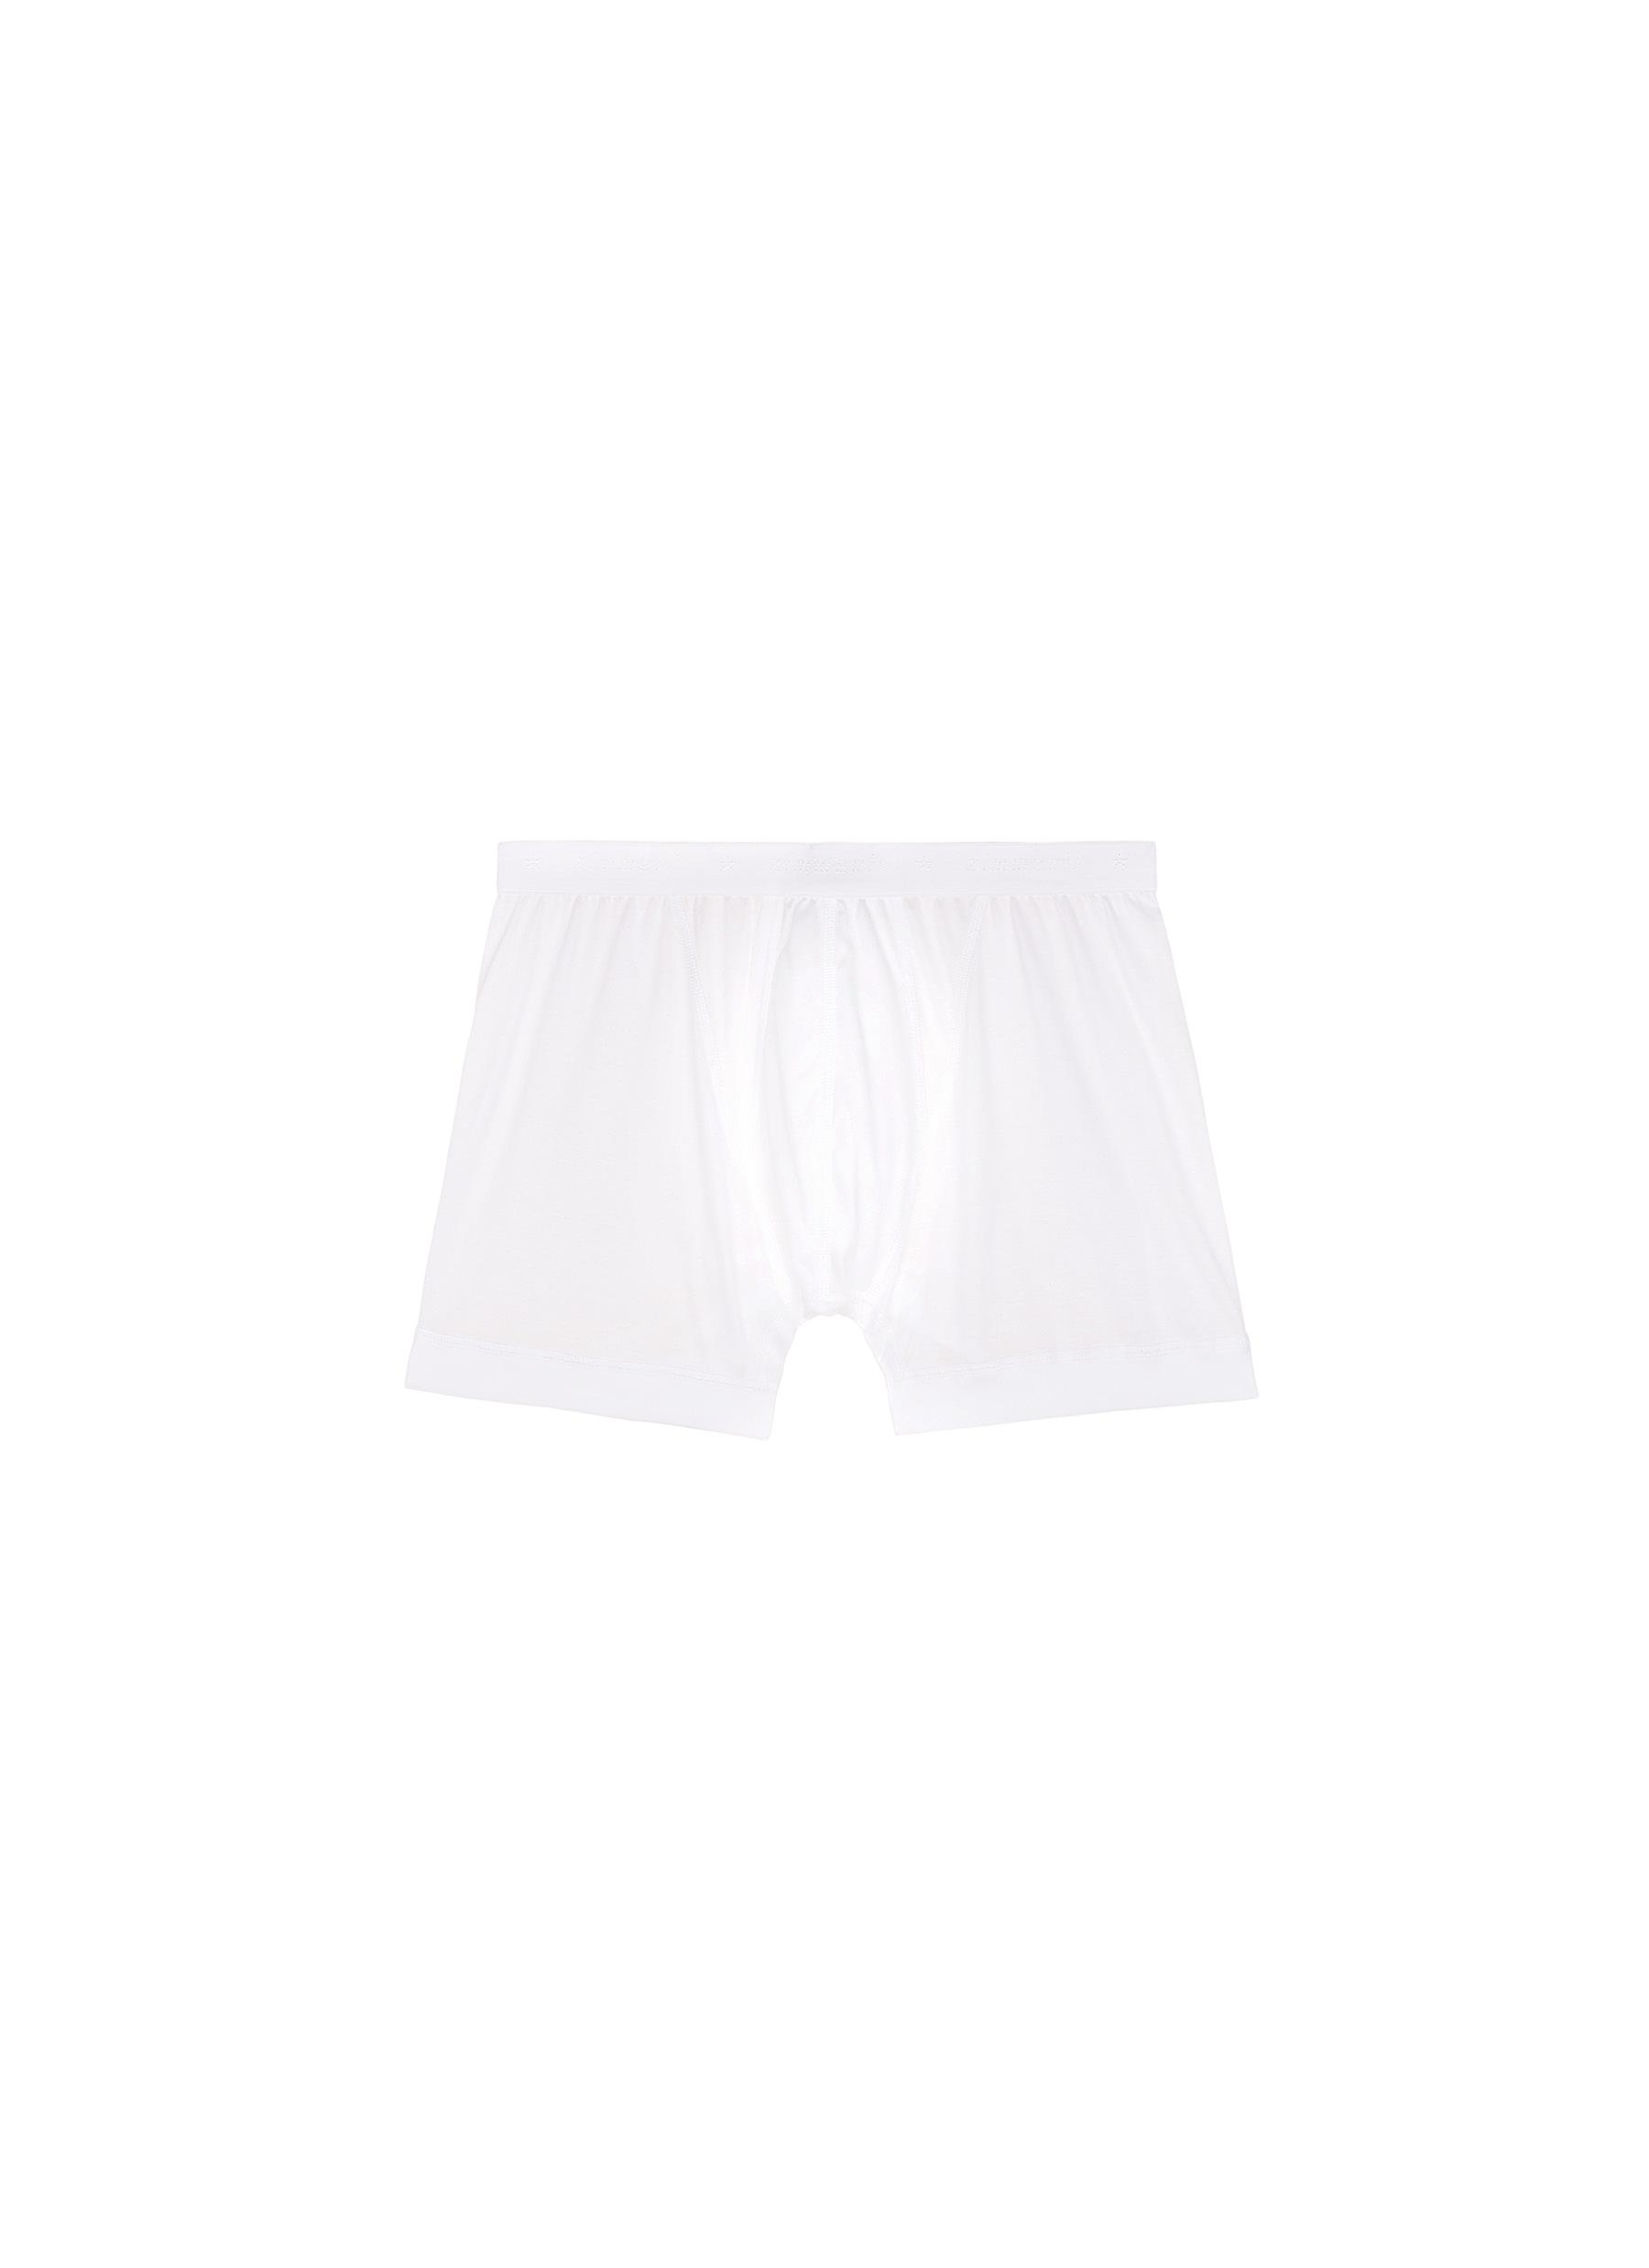 zimmerli male 252 royal classic cotton jersey boxers